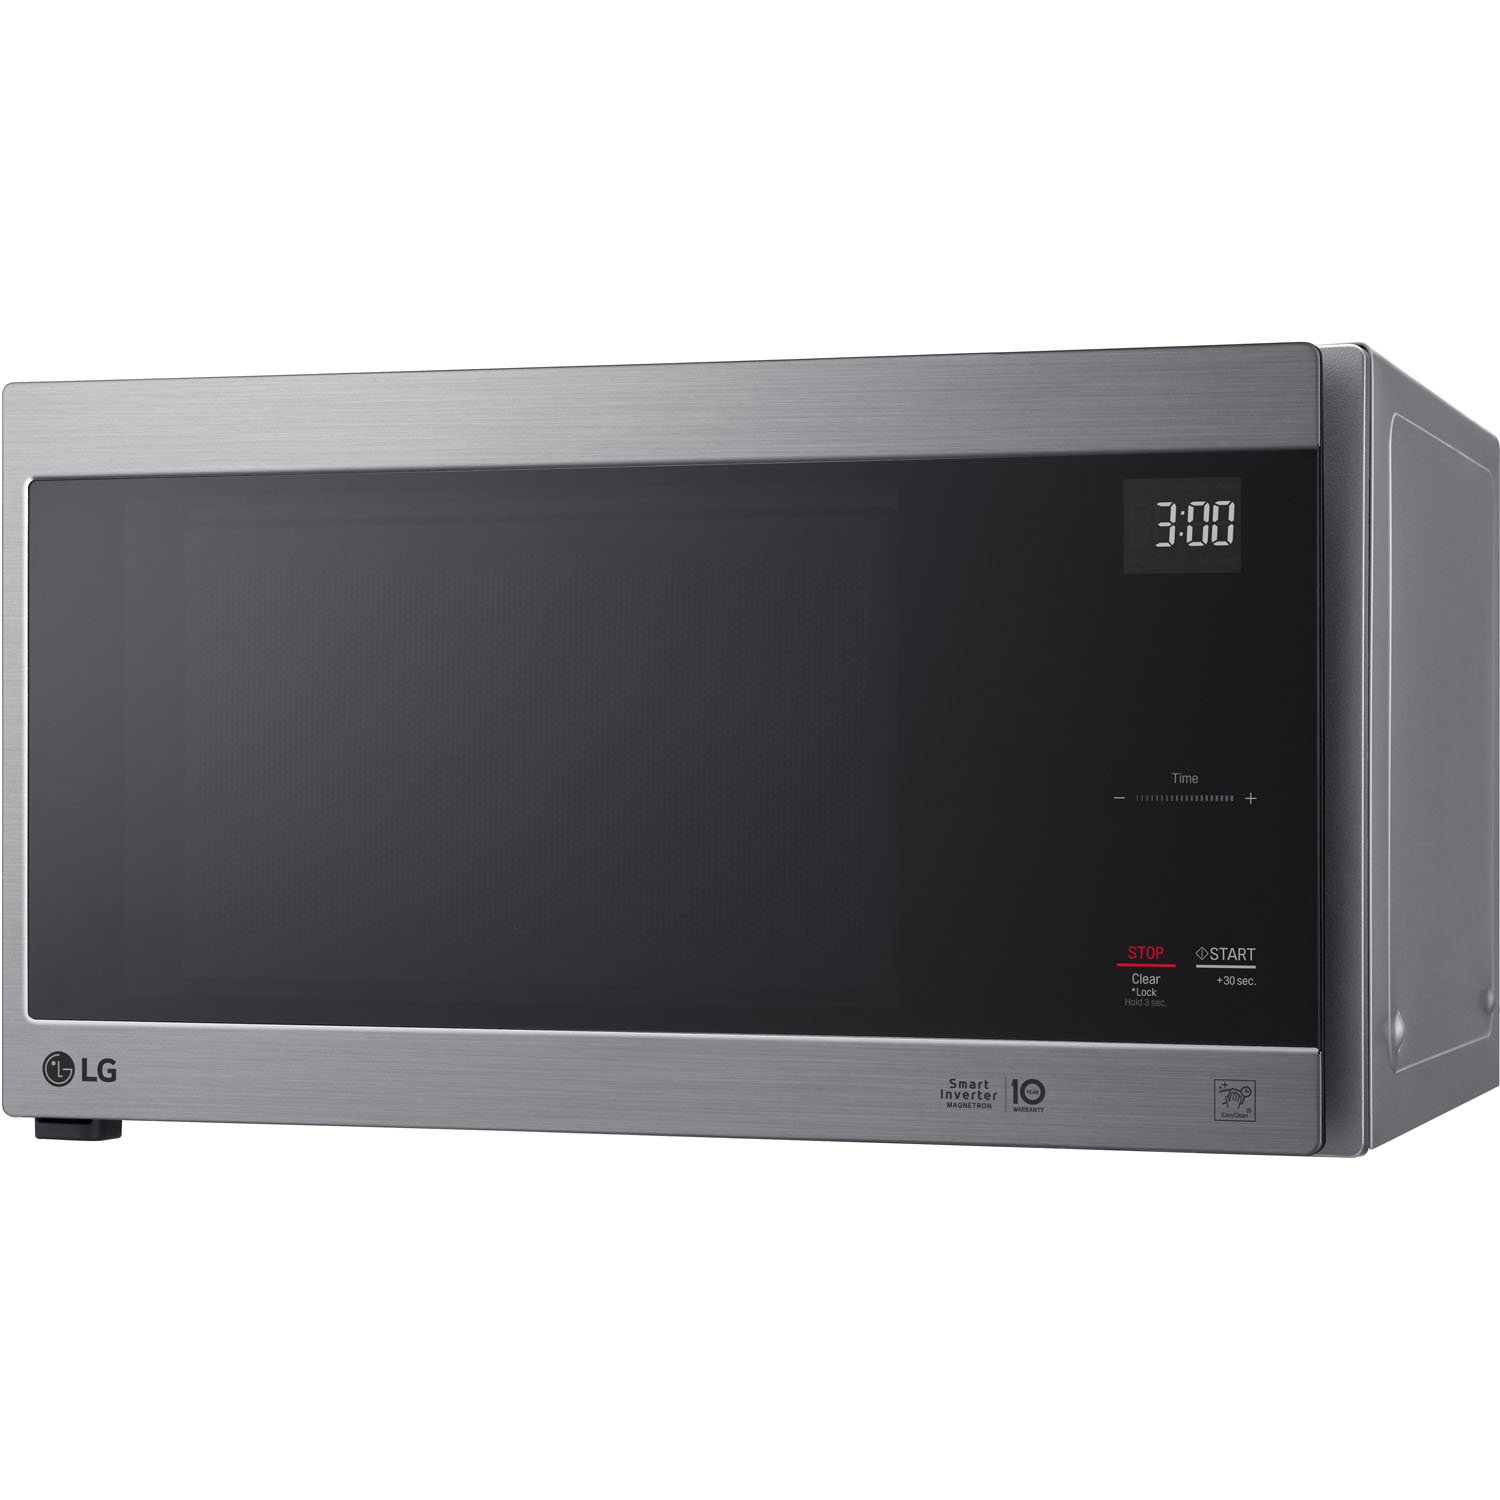 LG - NeoChef 1.5 Cu. Ft. Mid-Size Microwave (LMC1575ST) Stainless Steel/Black - New